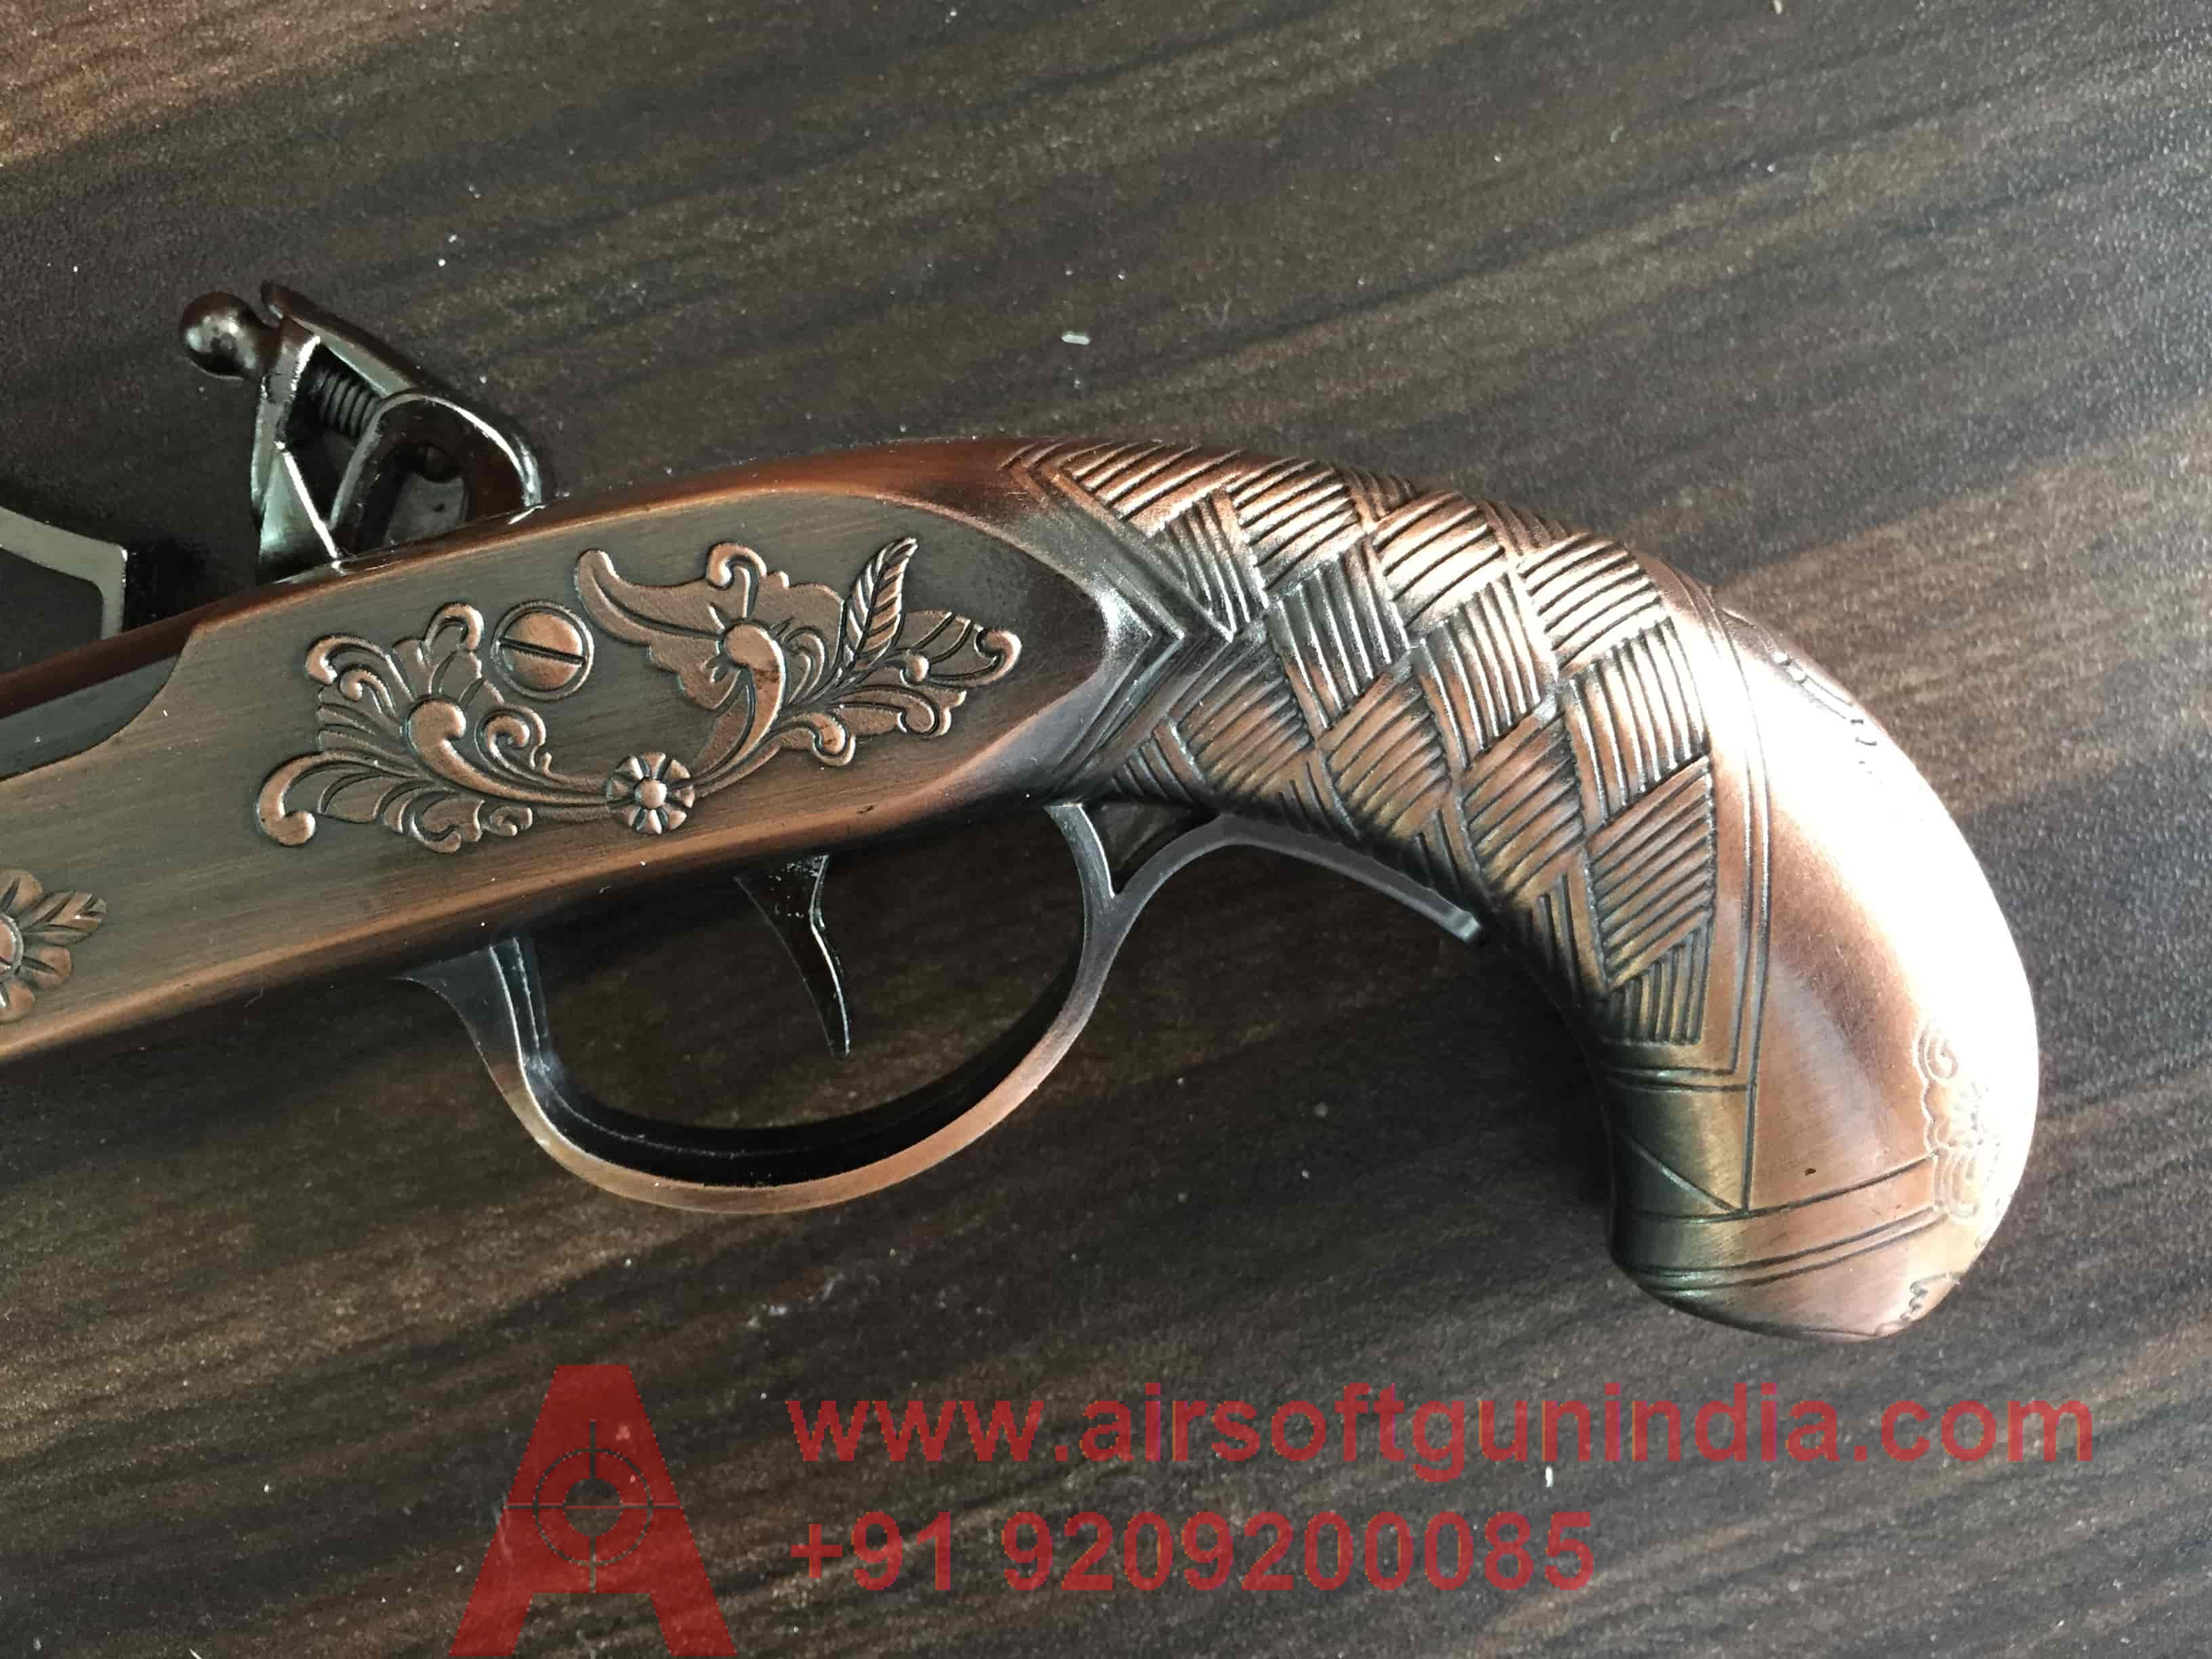 Flintlock Pistol Cigarette Lighter By Airsoft Gun India